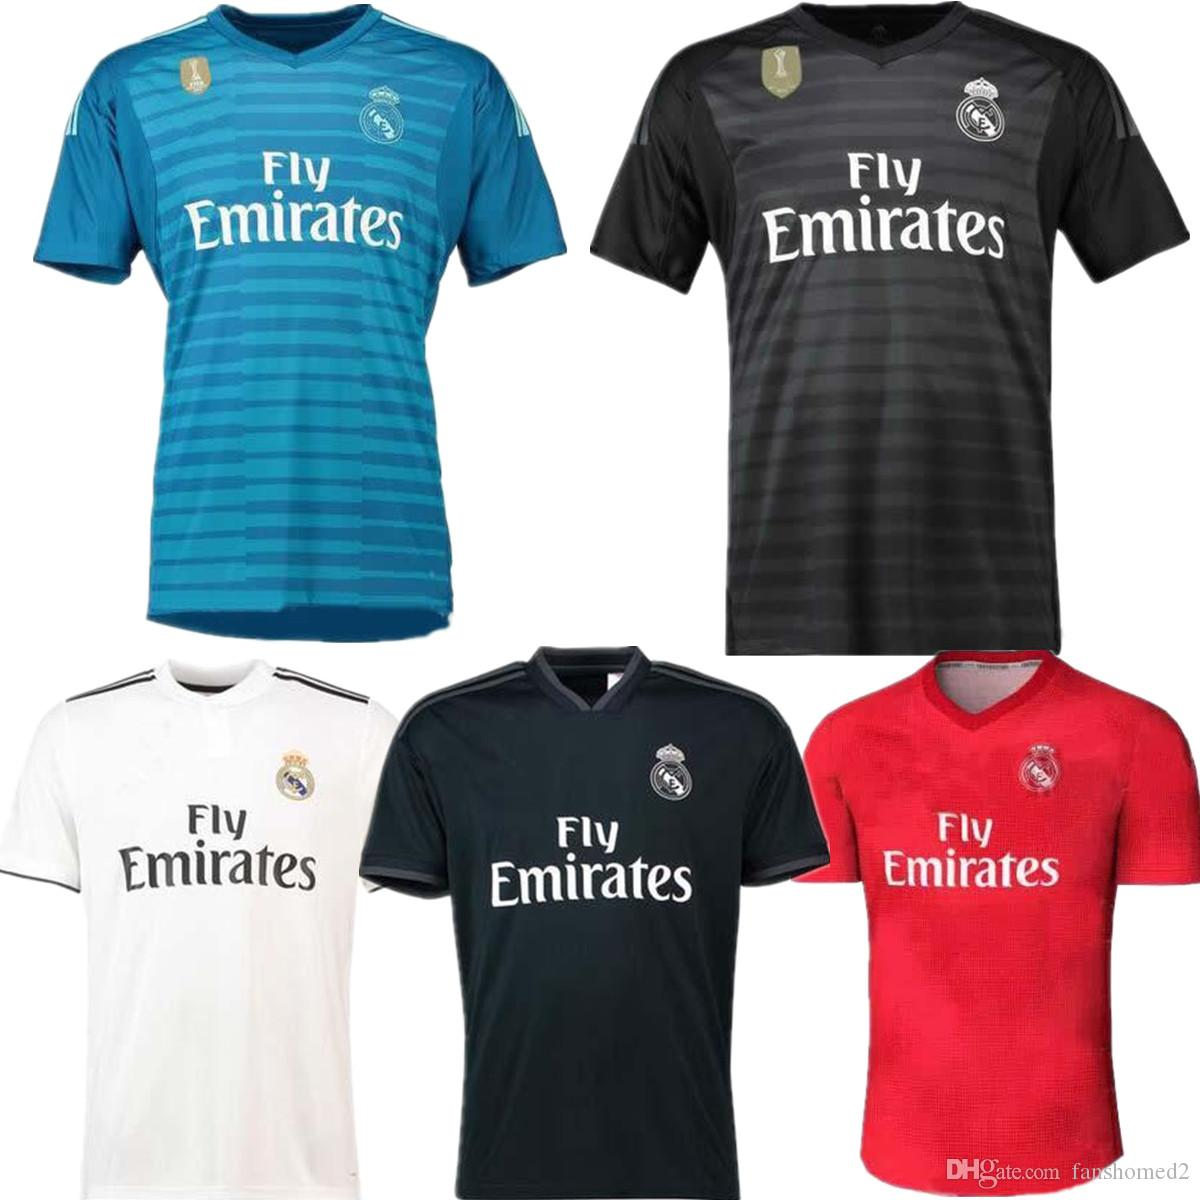 buy online c44f6 f2de9 2018 2019 Real Madrid #1 25 Courtois Goalkeeper Jersey Away Third Red  Varane Bale Isco Navas Soccer Jerseys Arsensio Modric BENZEMA Camiseta